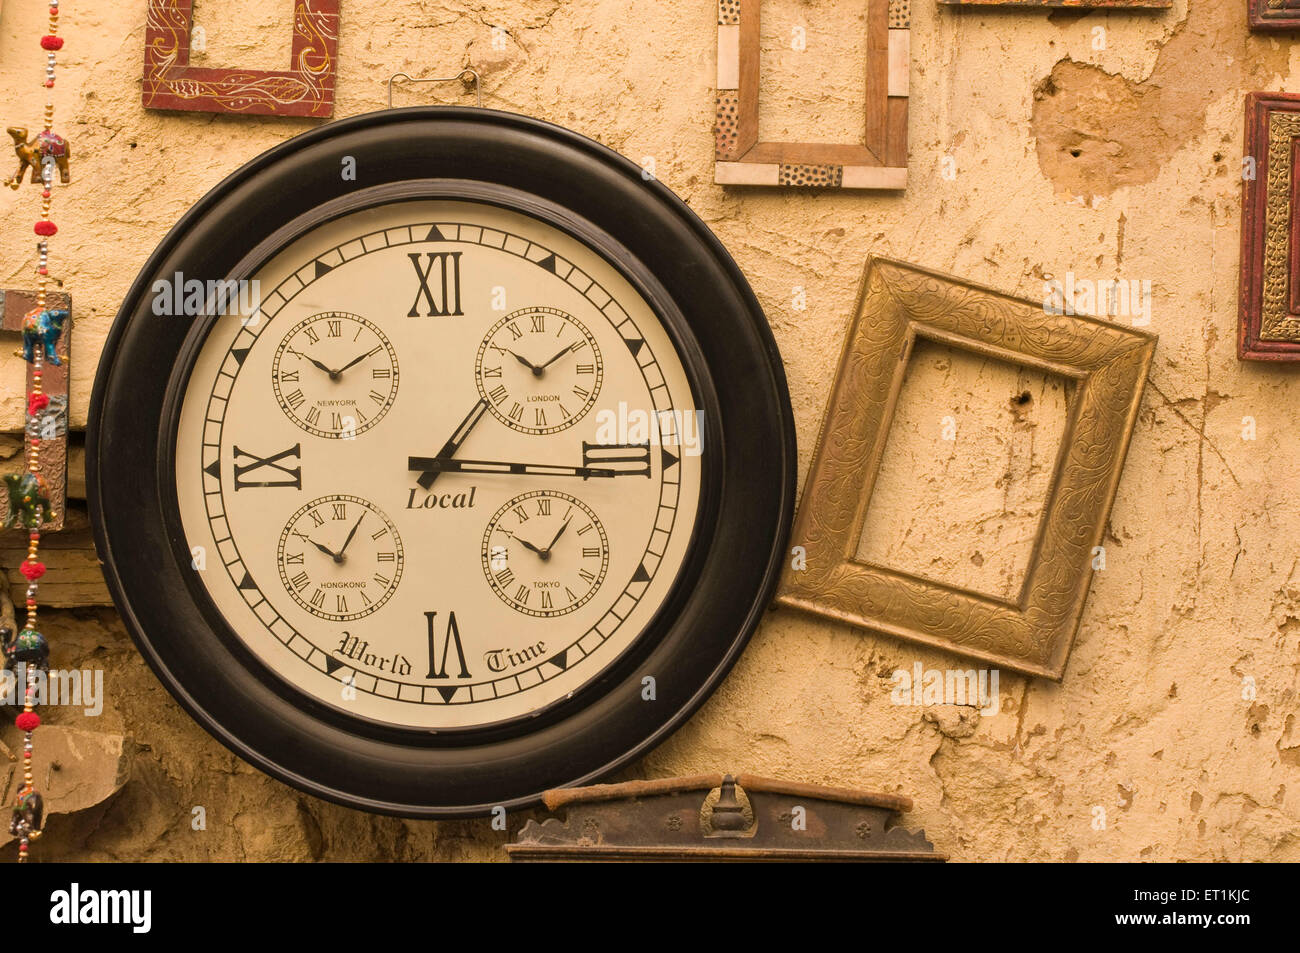 antique wooden wall clock for sale Jaisalmer Rajasthan India Asia - Stock Image